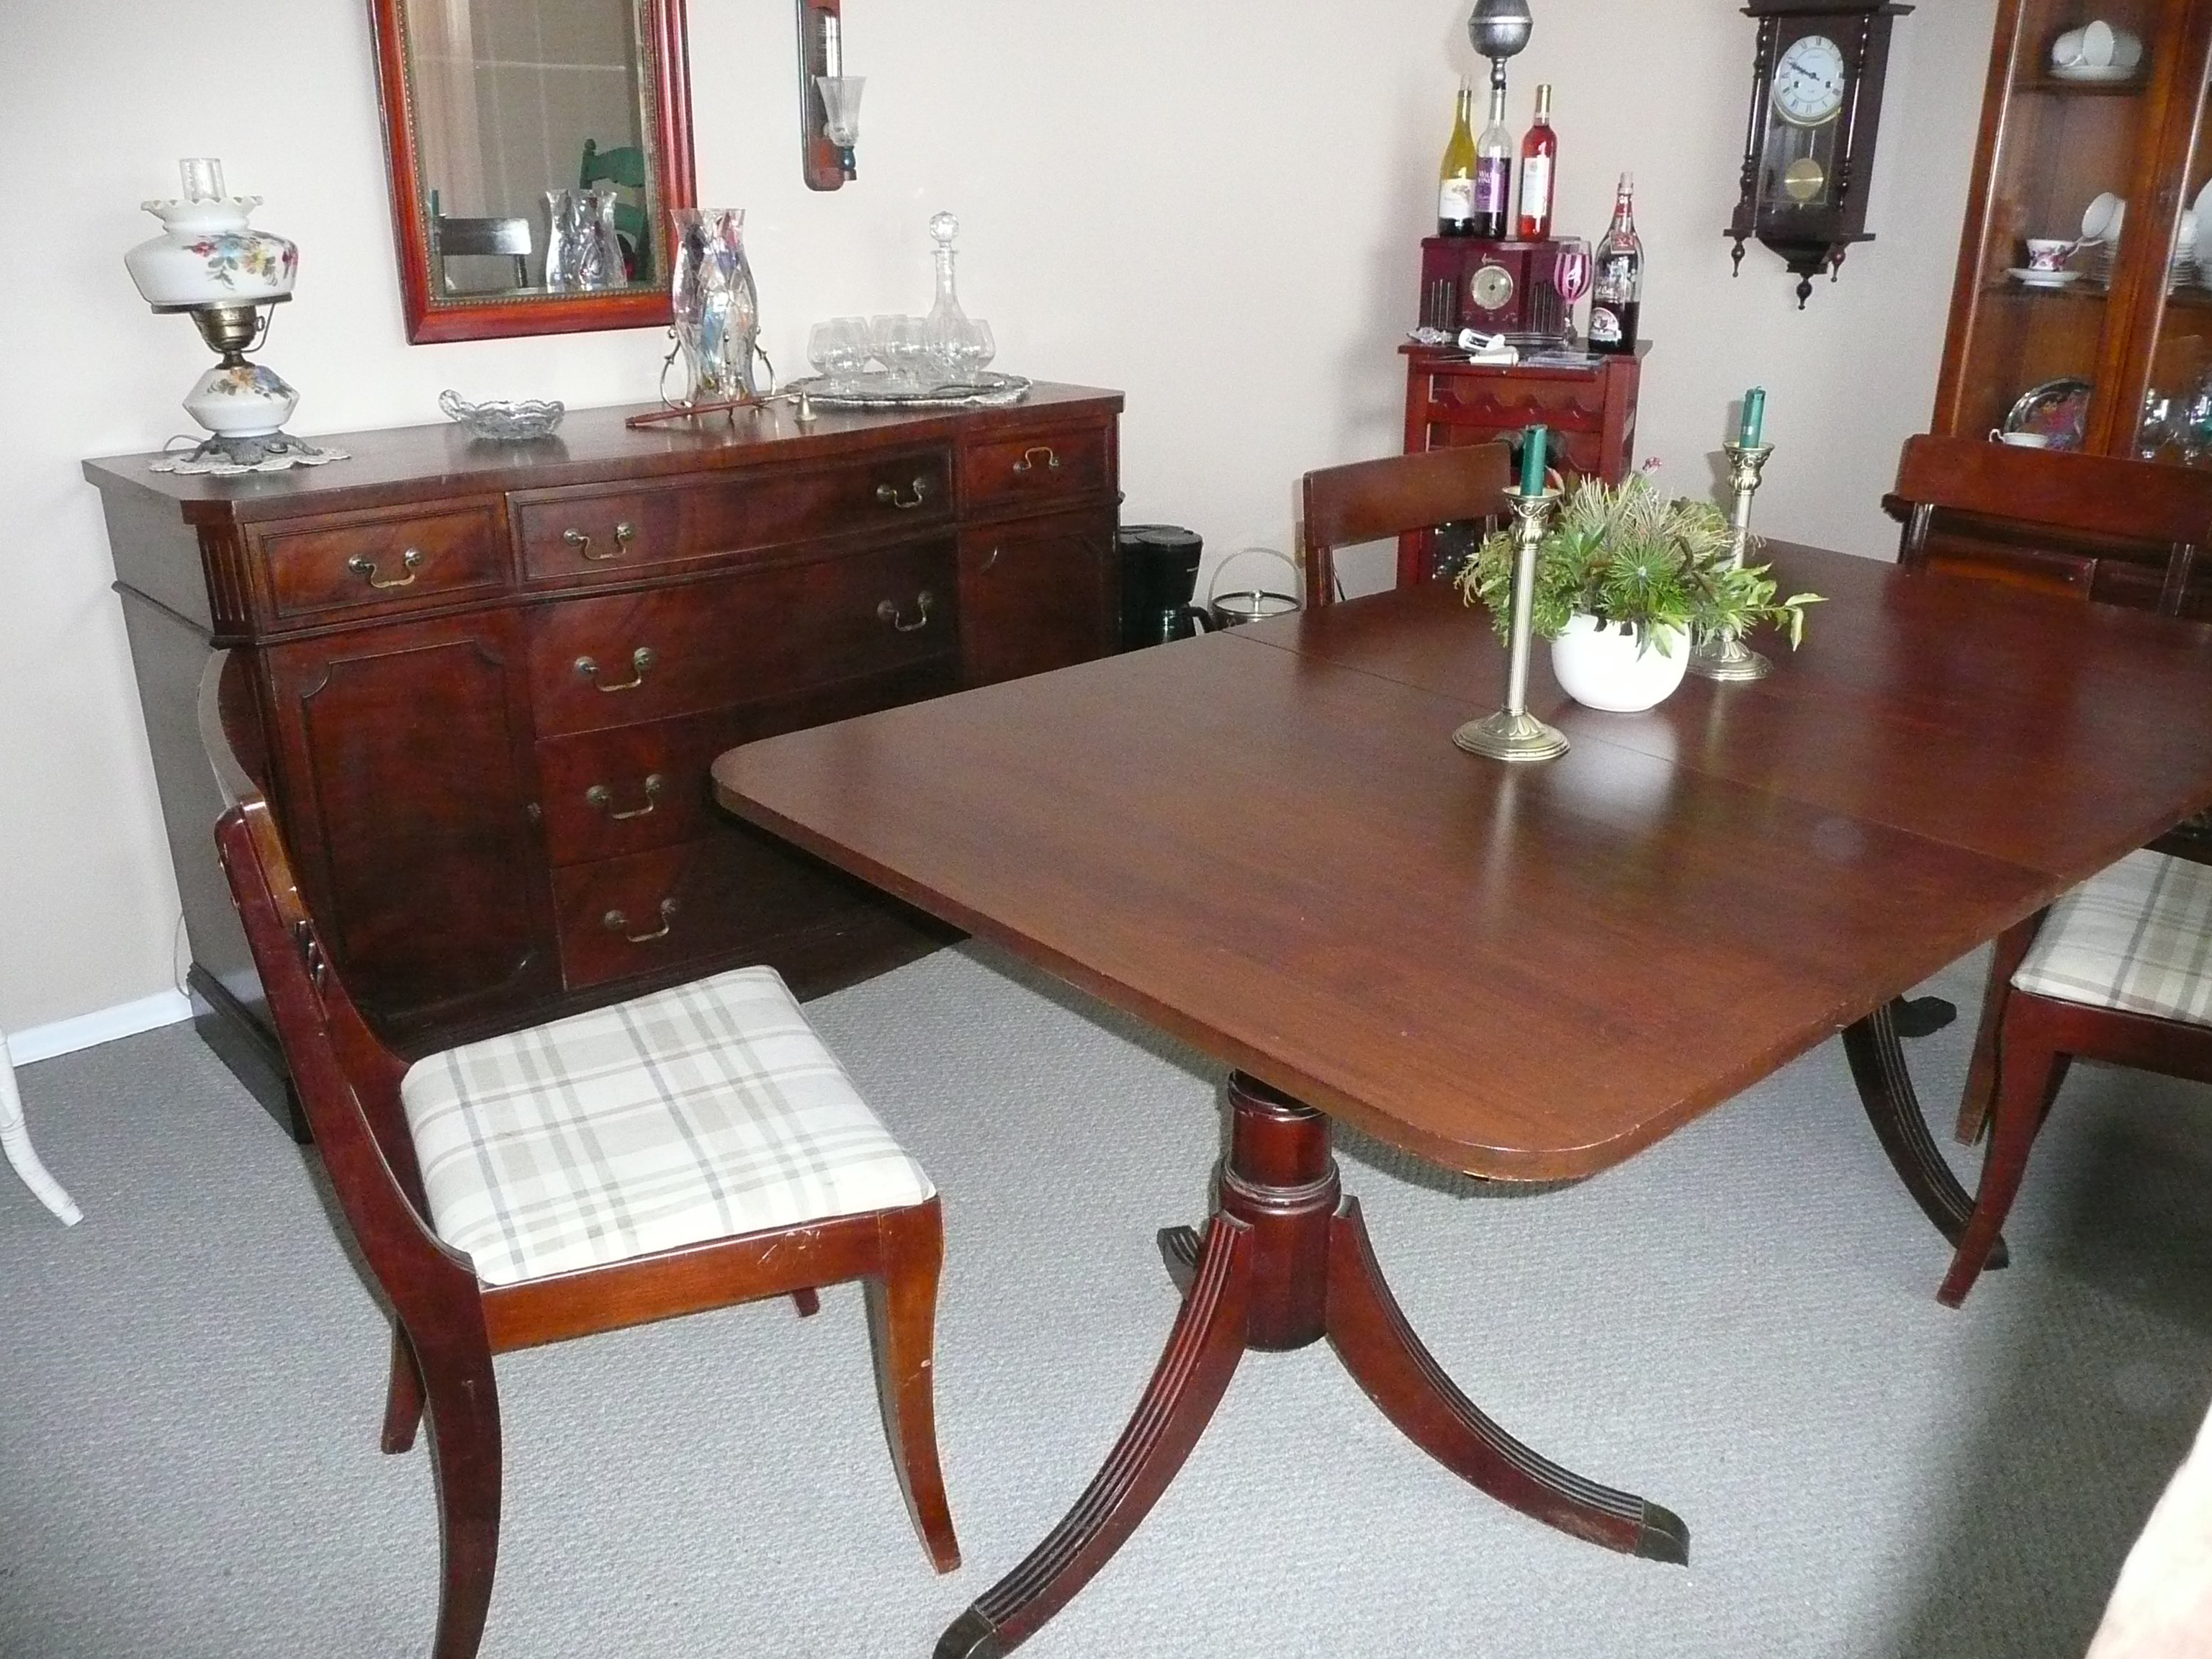 Paramount Furniture Mahogany Dining Table and side board  : ori16351142280881094265P1070429 from www.antiques.com size 3072 x 2304 jpeg 2828kB